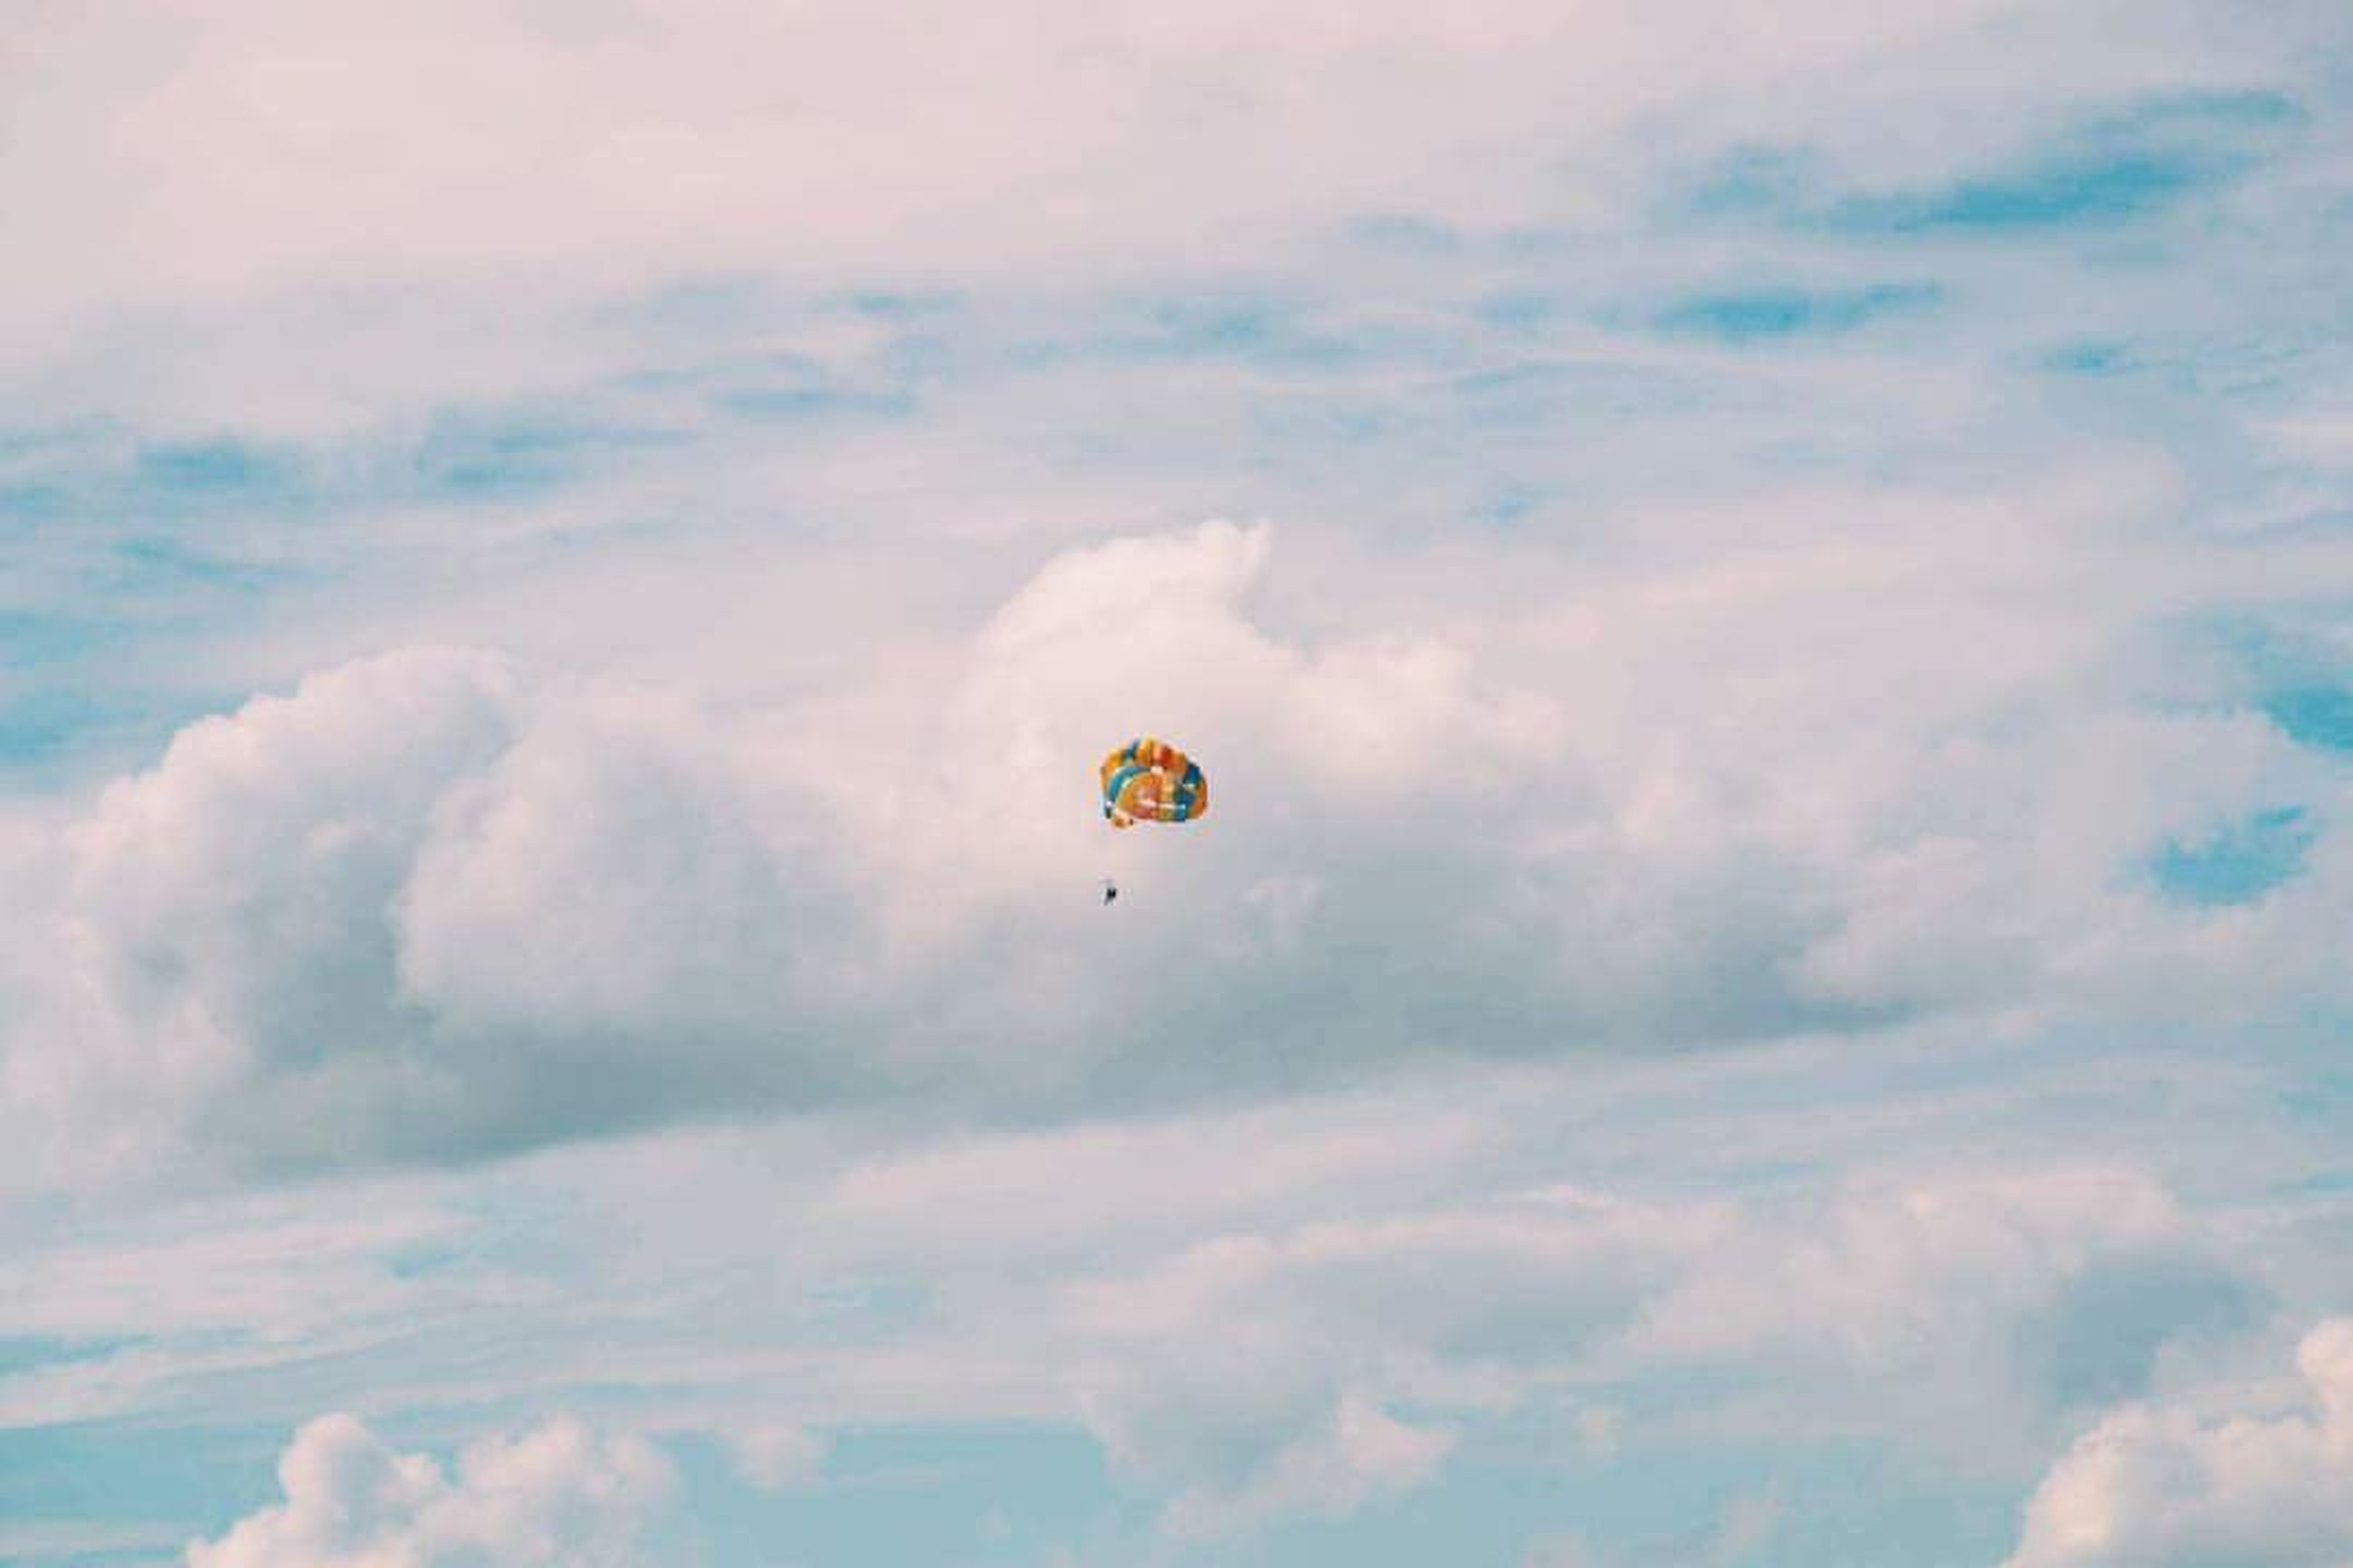 cloud - sky, sky, flying, mid-air, adventure, parachute, paragliding, transportation, extreme sports, low angle view, unrecognizable person, sport, real people, leisure activity, nature, freedom, day, one person, beauty in nature, joy, outdoors, parasailing